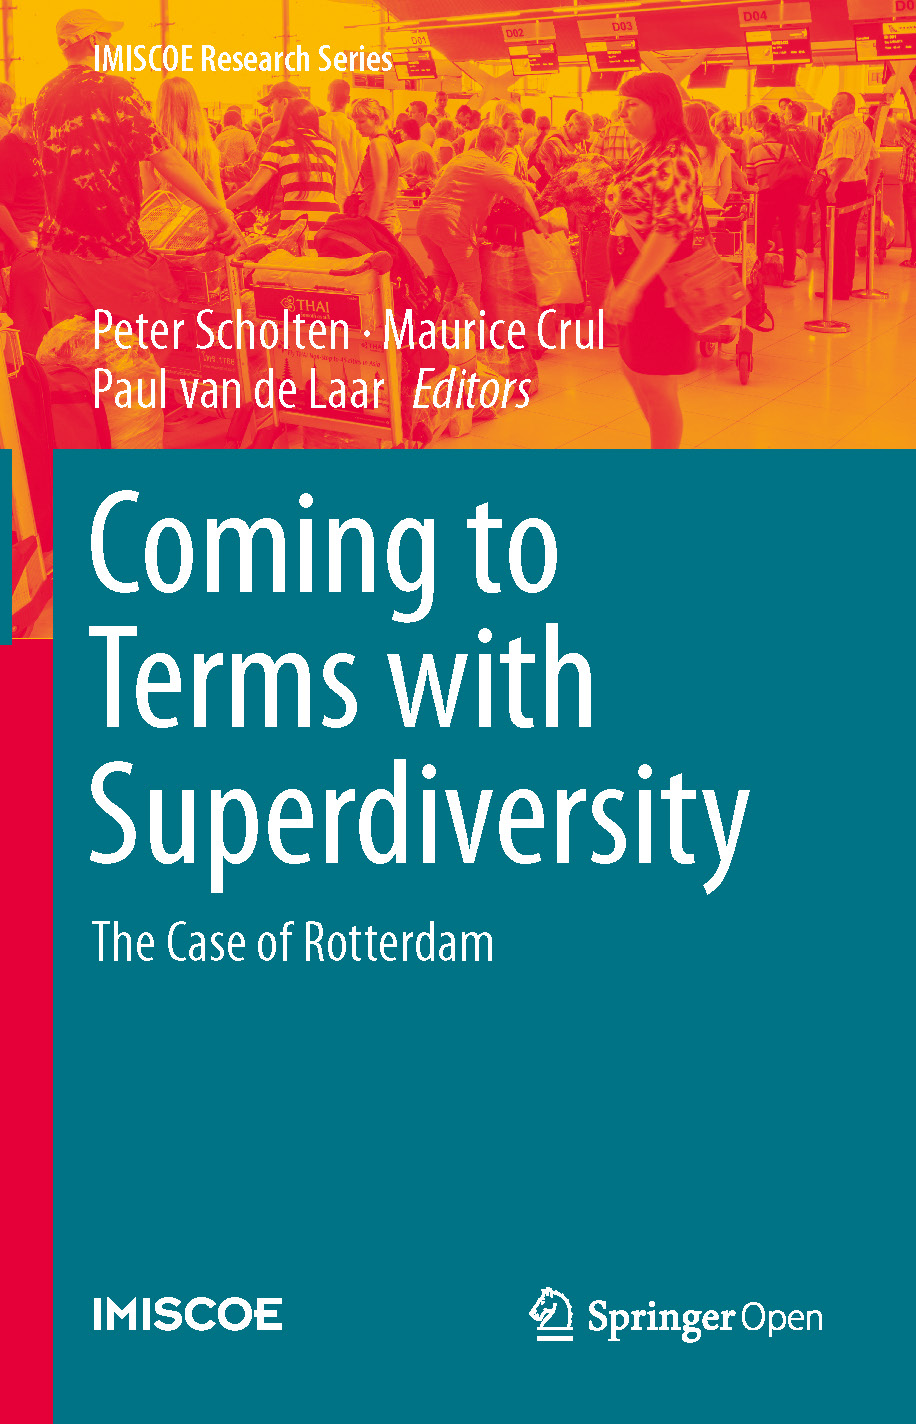 Cover of Coming to Terms with Superdiversity